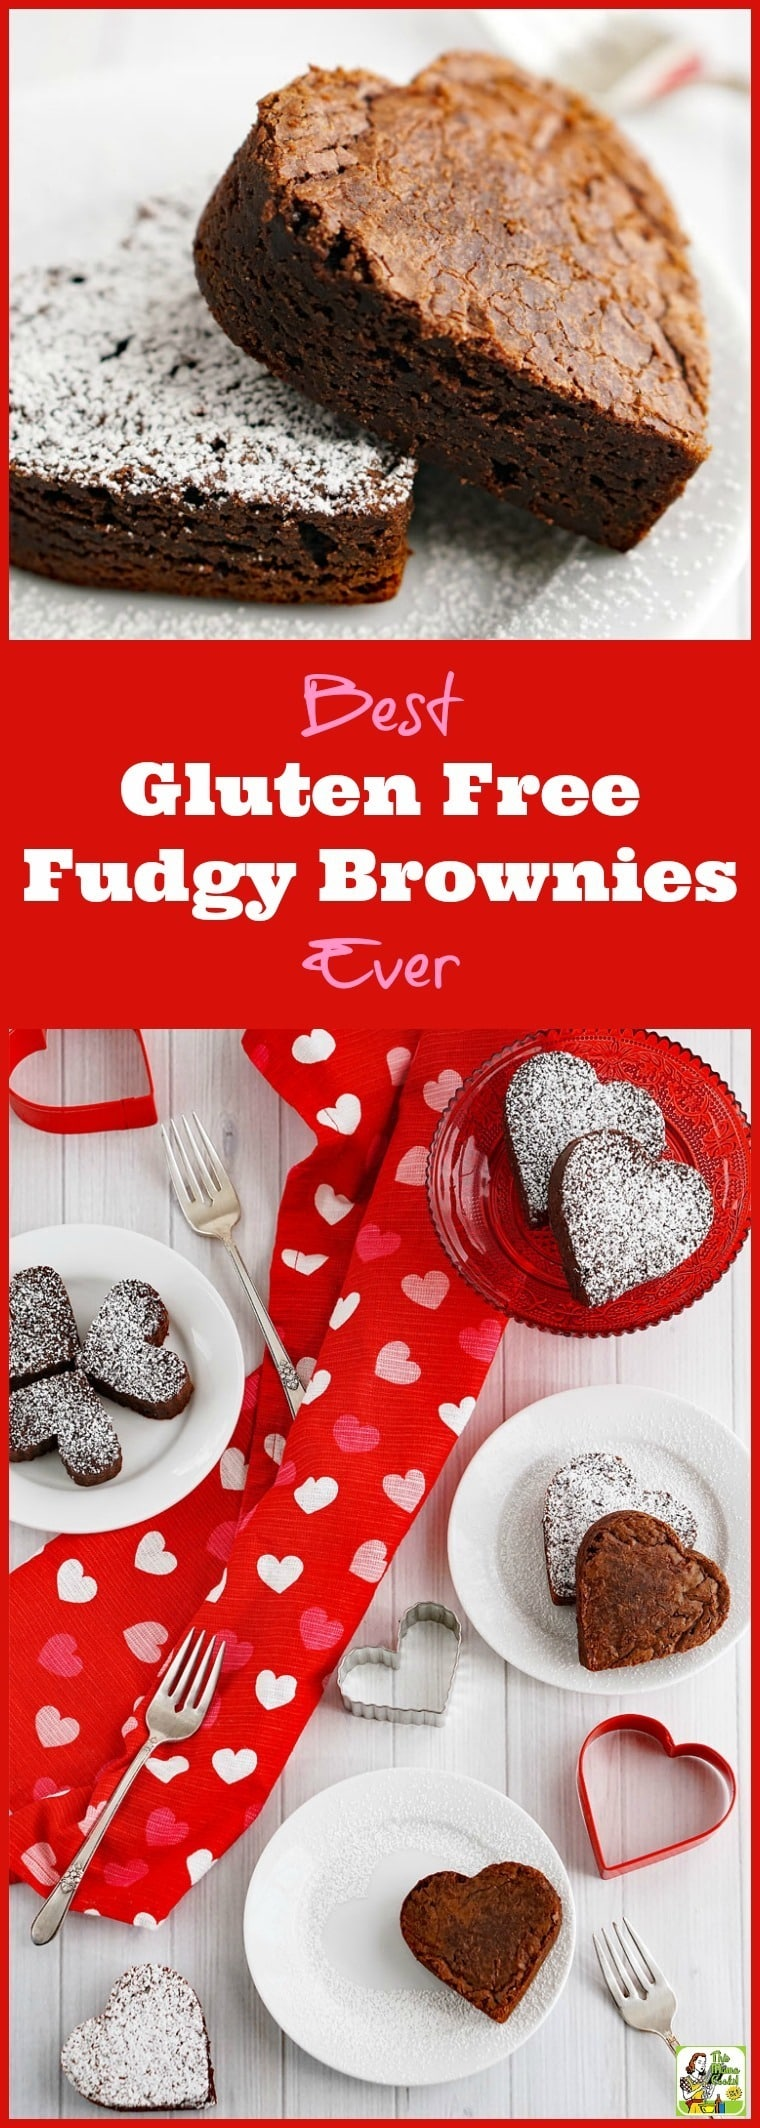 Looking for an easy gluten free fudgy brownie recipe? Try the Best Gluten Free Fudgy Brownies Ever! Perfect for Valentine\'s Day! #valentinesday #brownies #browniesrecipe #chocolate #glutenfreerecipes #glutenfreebaking #desserts #dessertrecipes #dessertideas #recipe #easy #recipeoftheday #healthyrecipes #glutenfree #easyrecipes